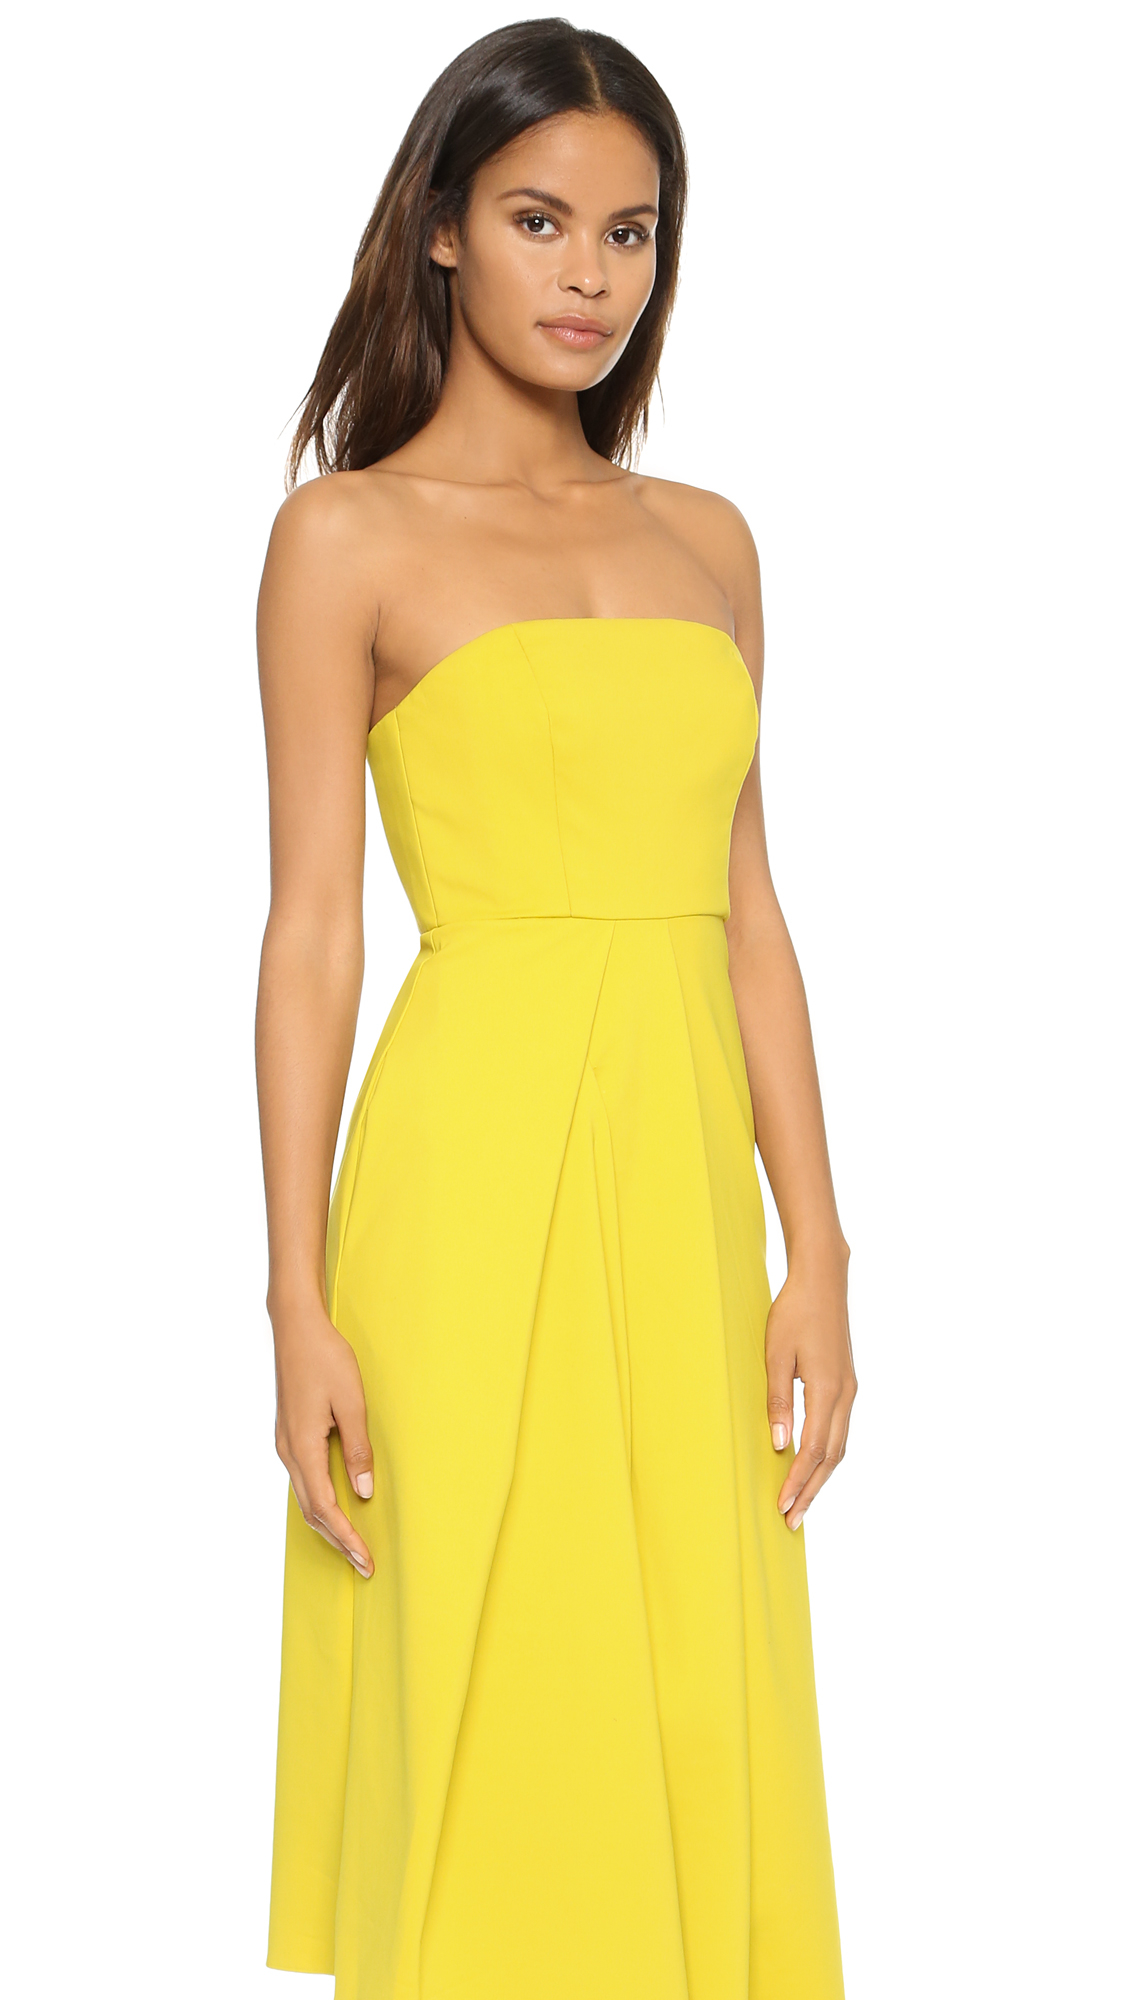 Tibi Asymmetric Drape Strapless Dress - Mustard